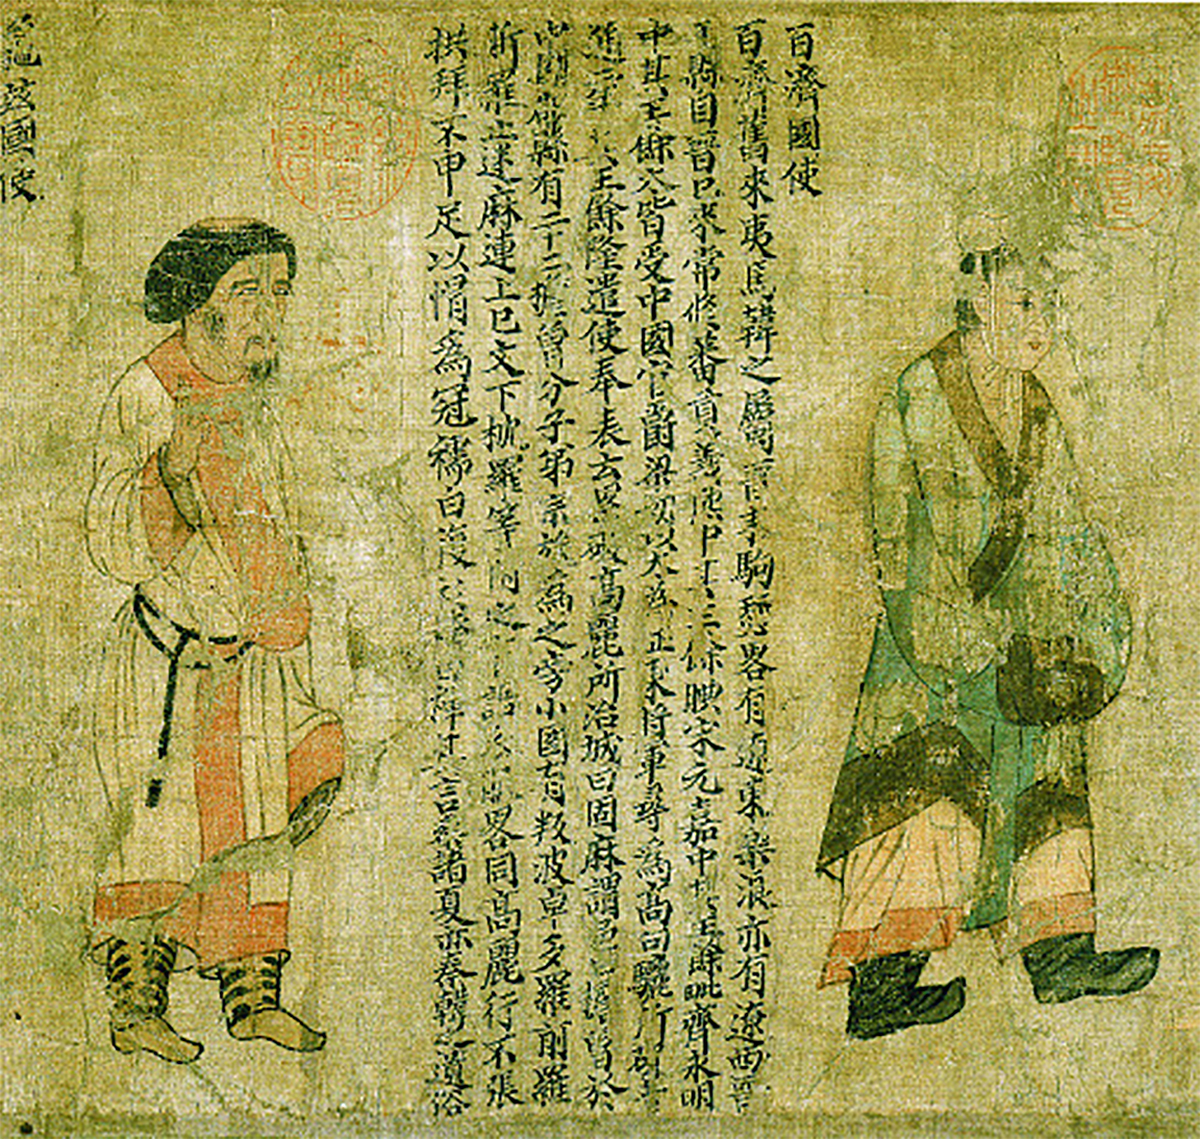 January 27, 555 – Death of Yuan Di, emperor of the Liang Dynasty